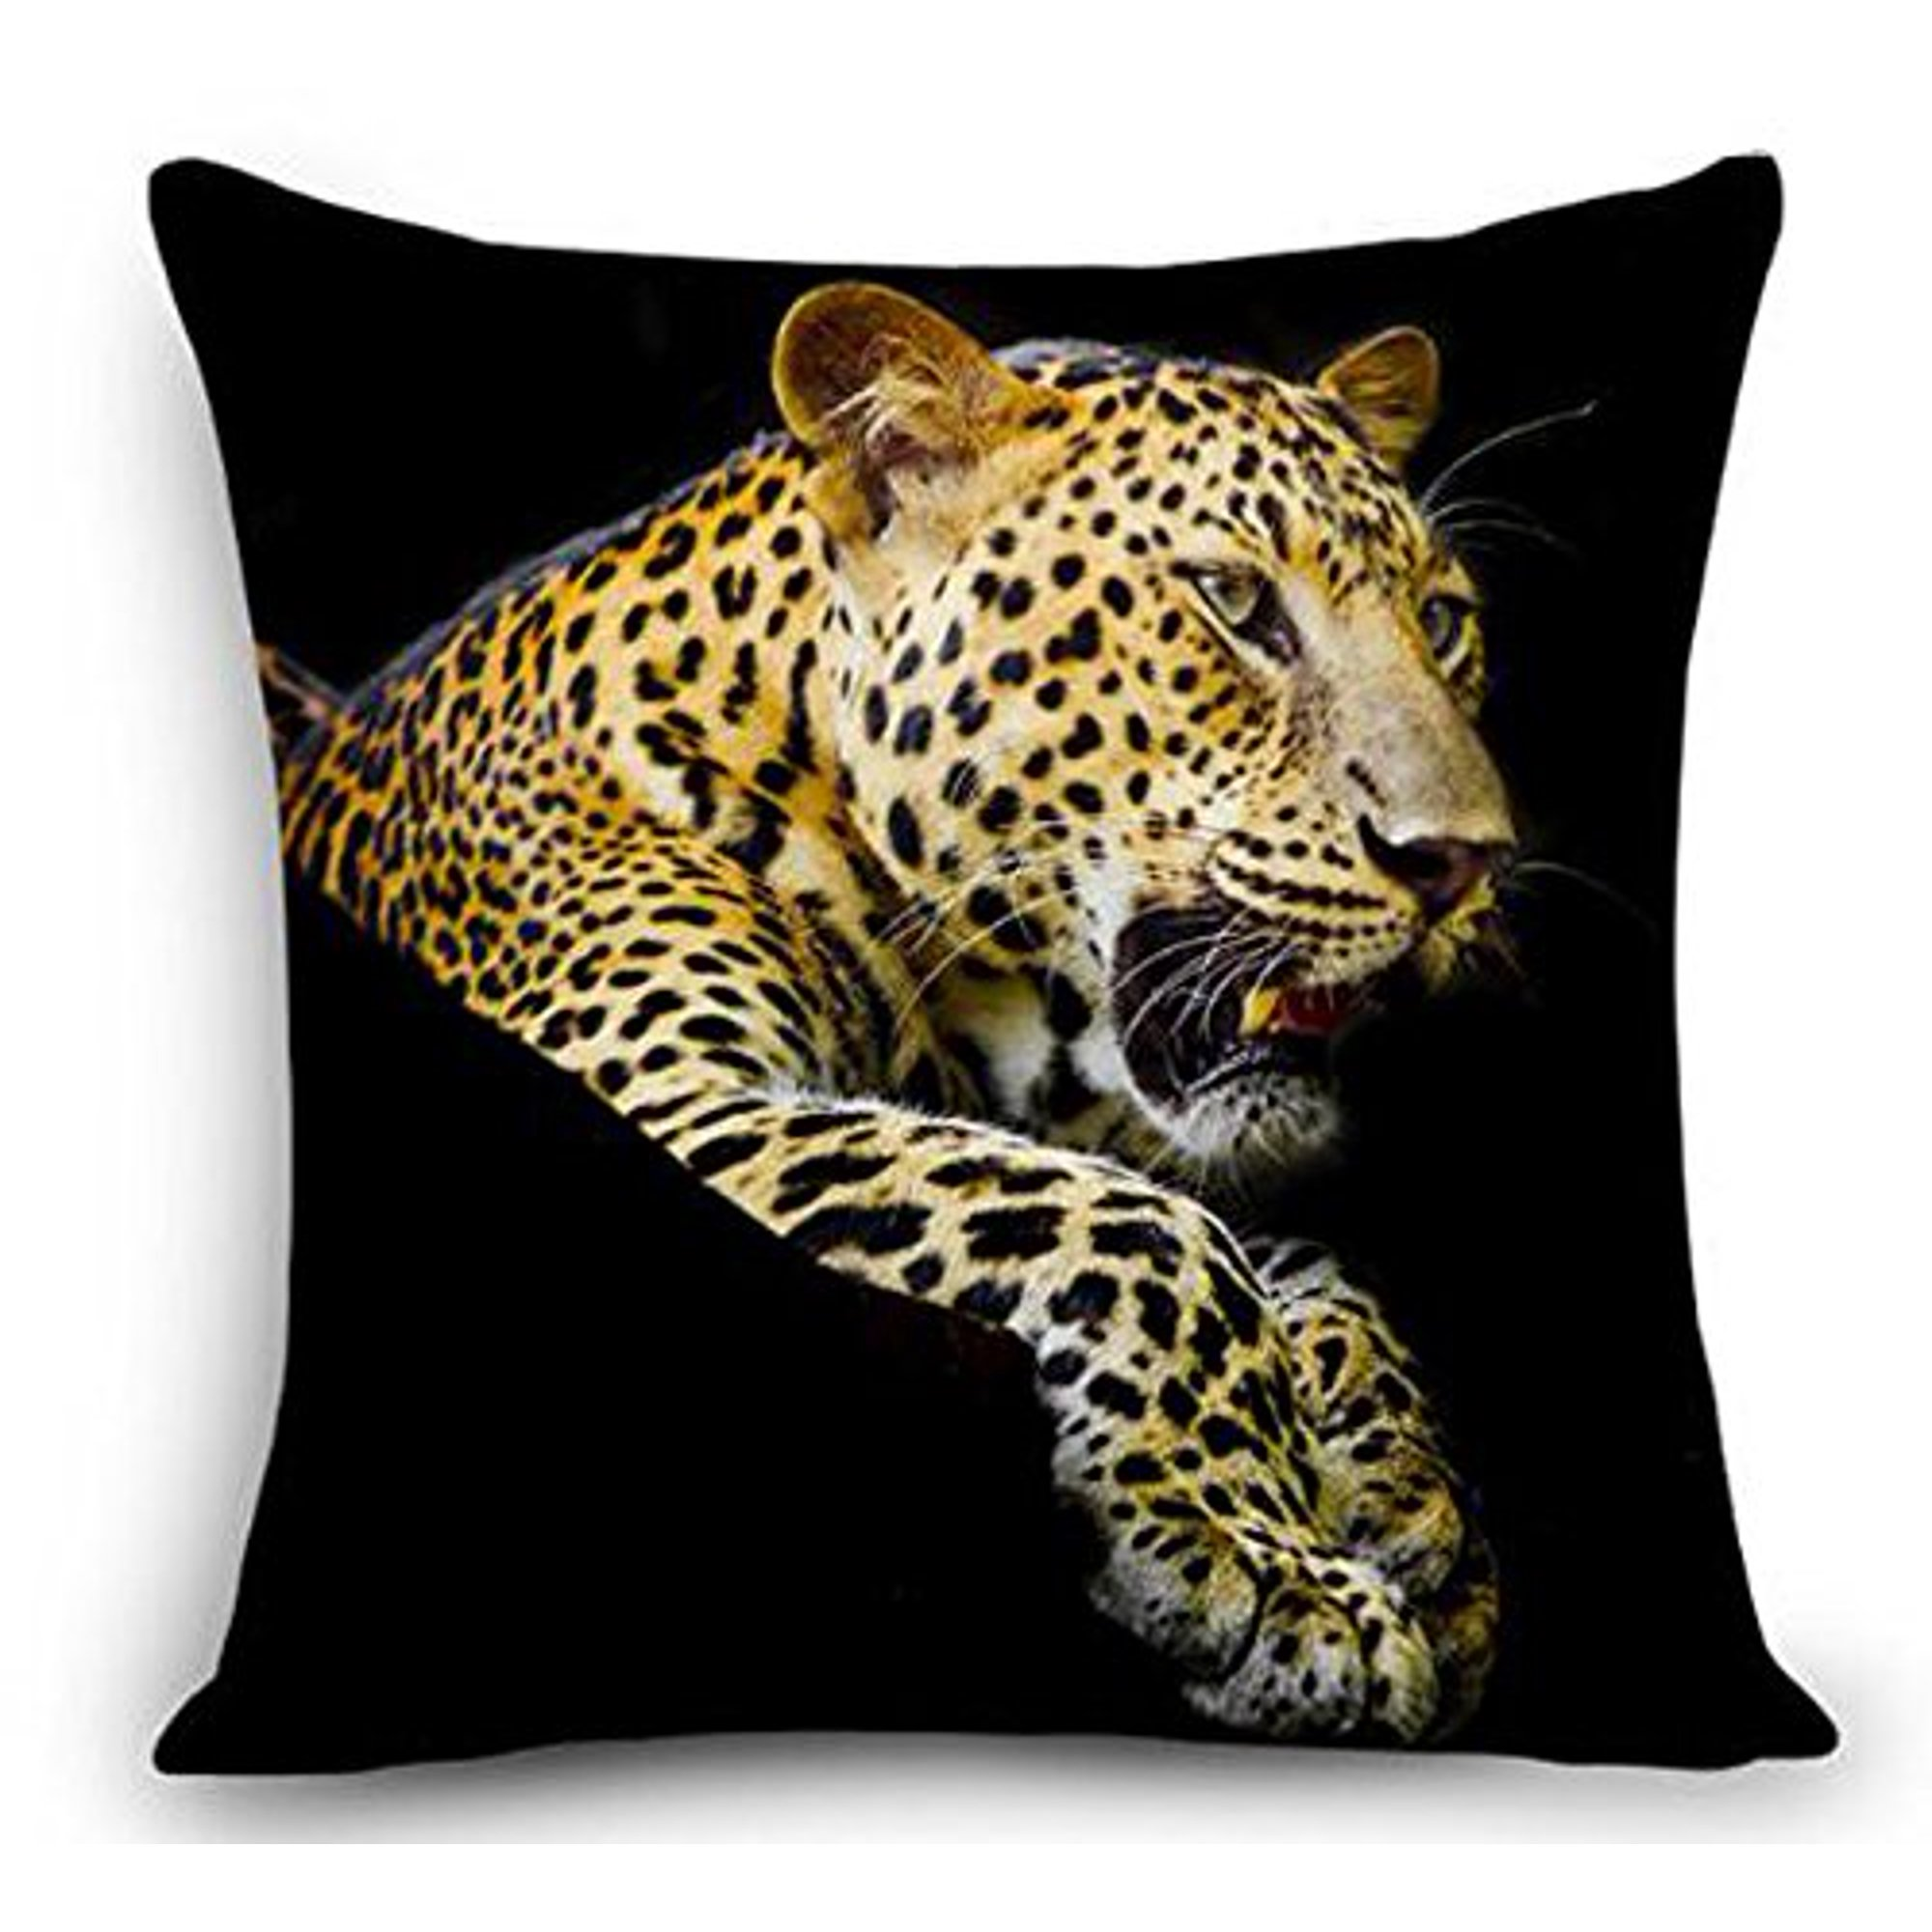 Animal Cheetah Leopard Throw Pillow Cover Cushion Case Cotton Linen Material Decorative 18 Square 1 Walmart Canada